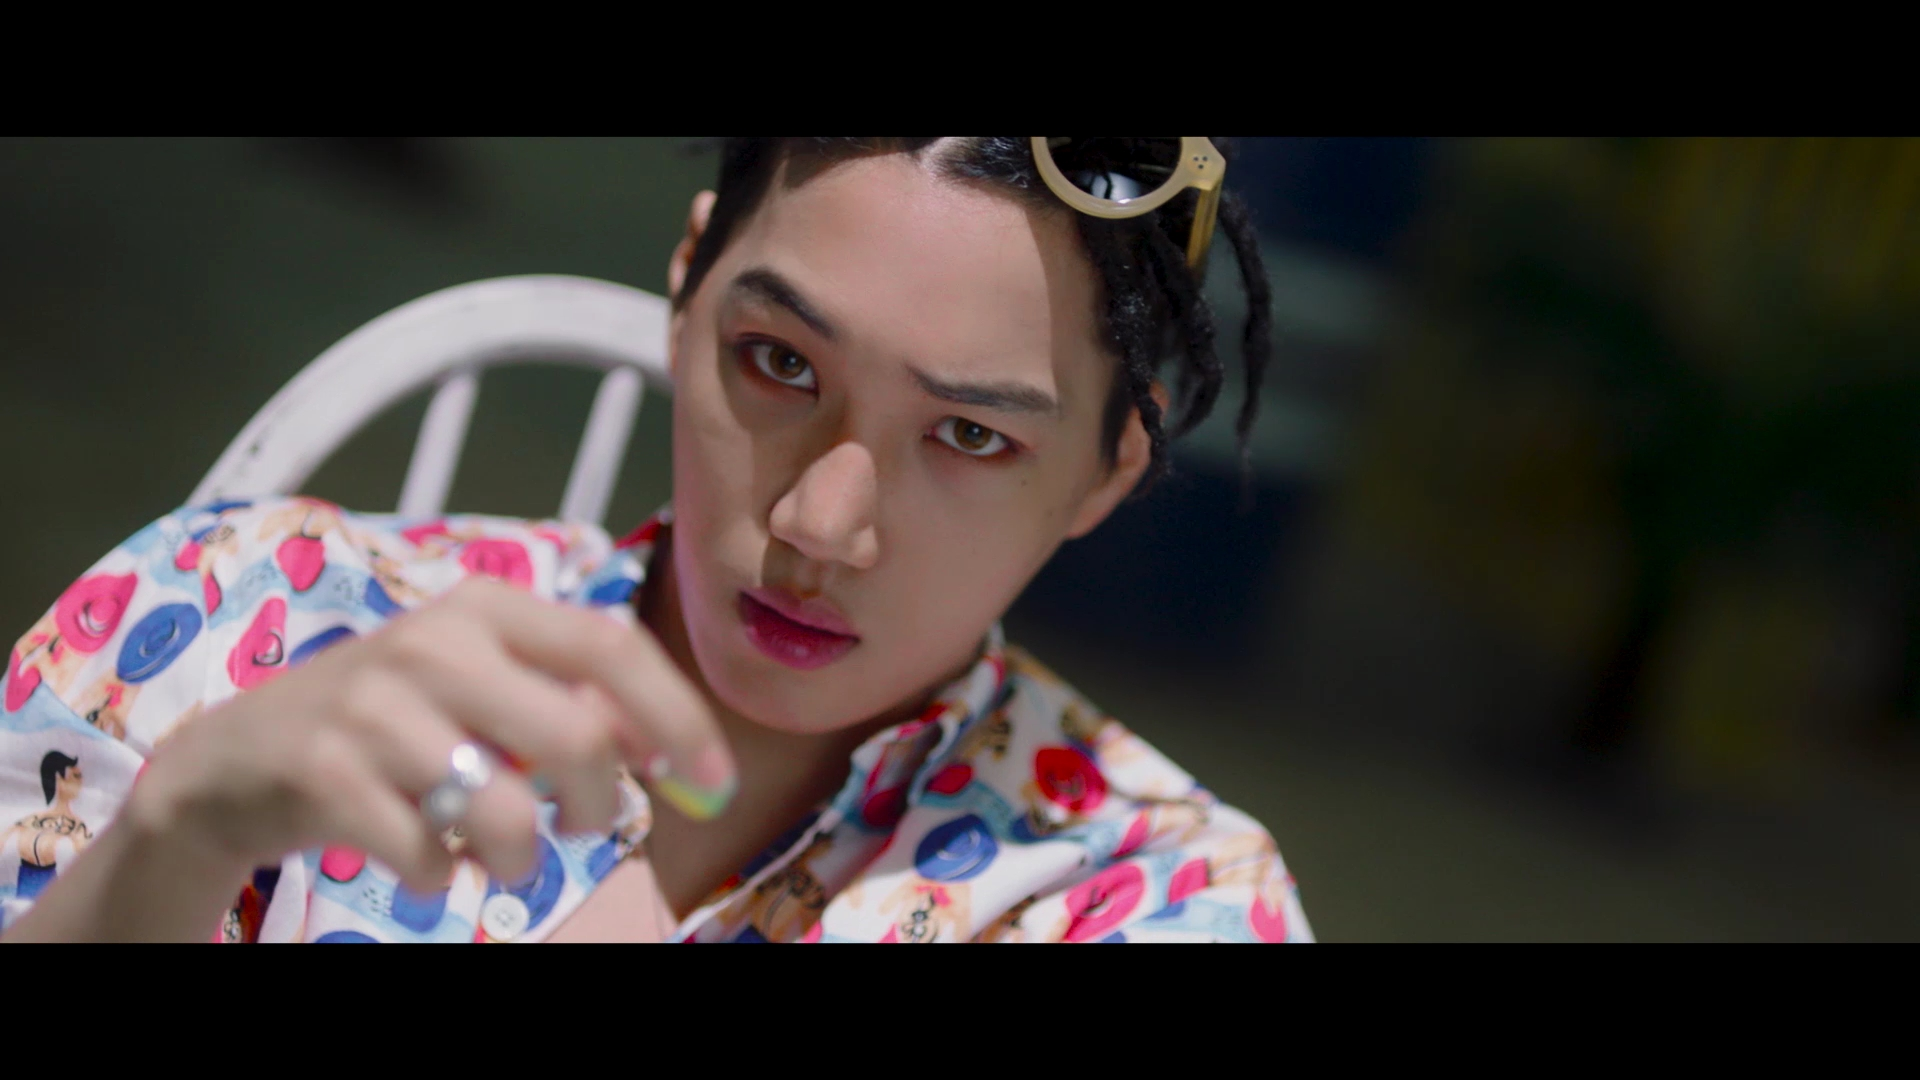 EXO_THE WAR_Teaser Clip #KAI